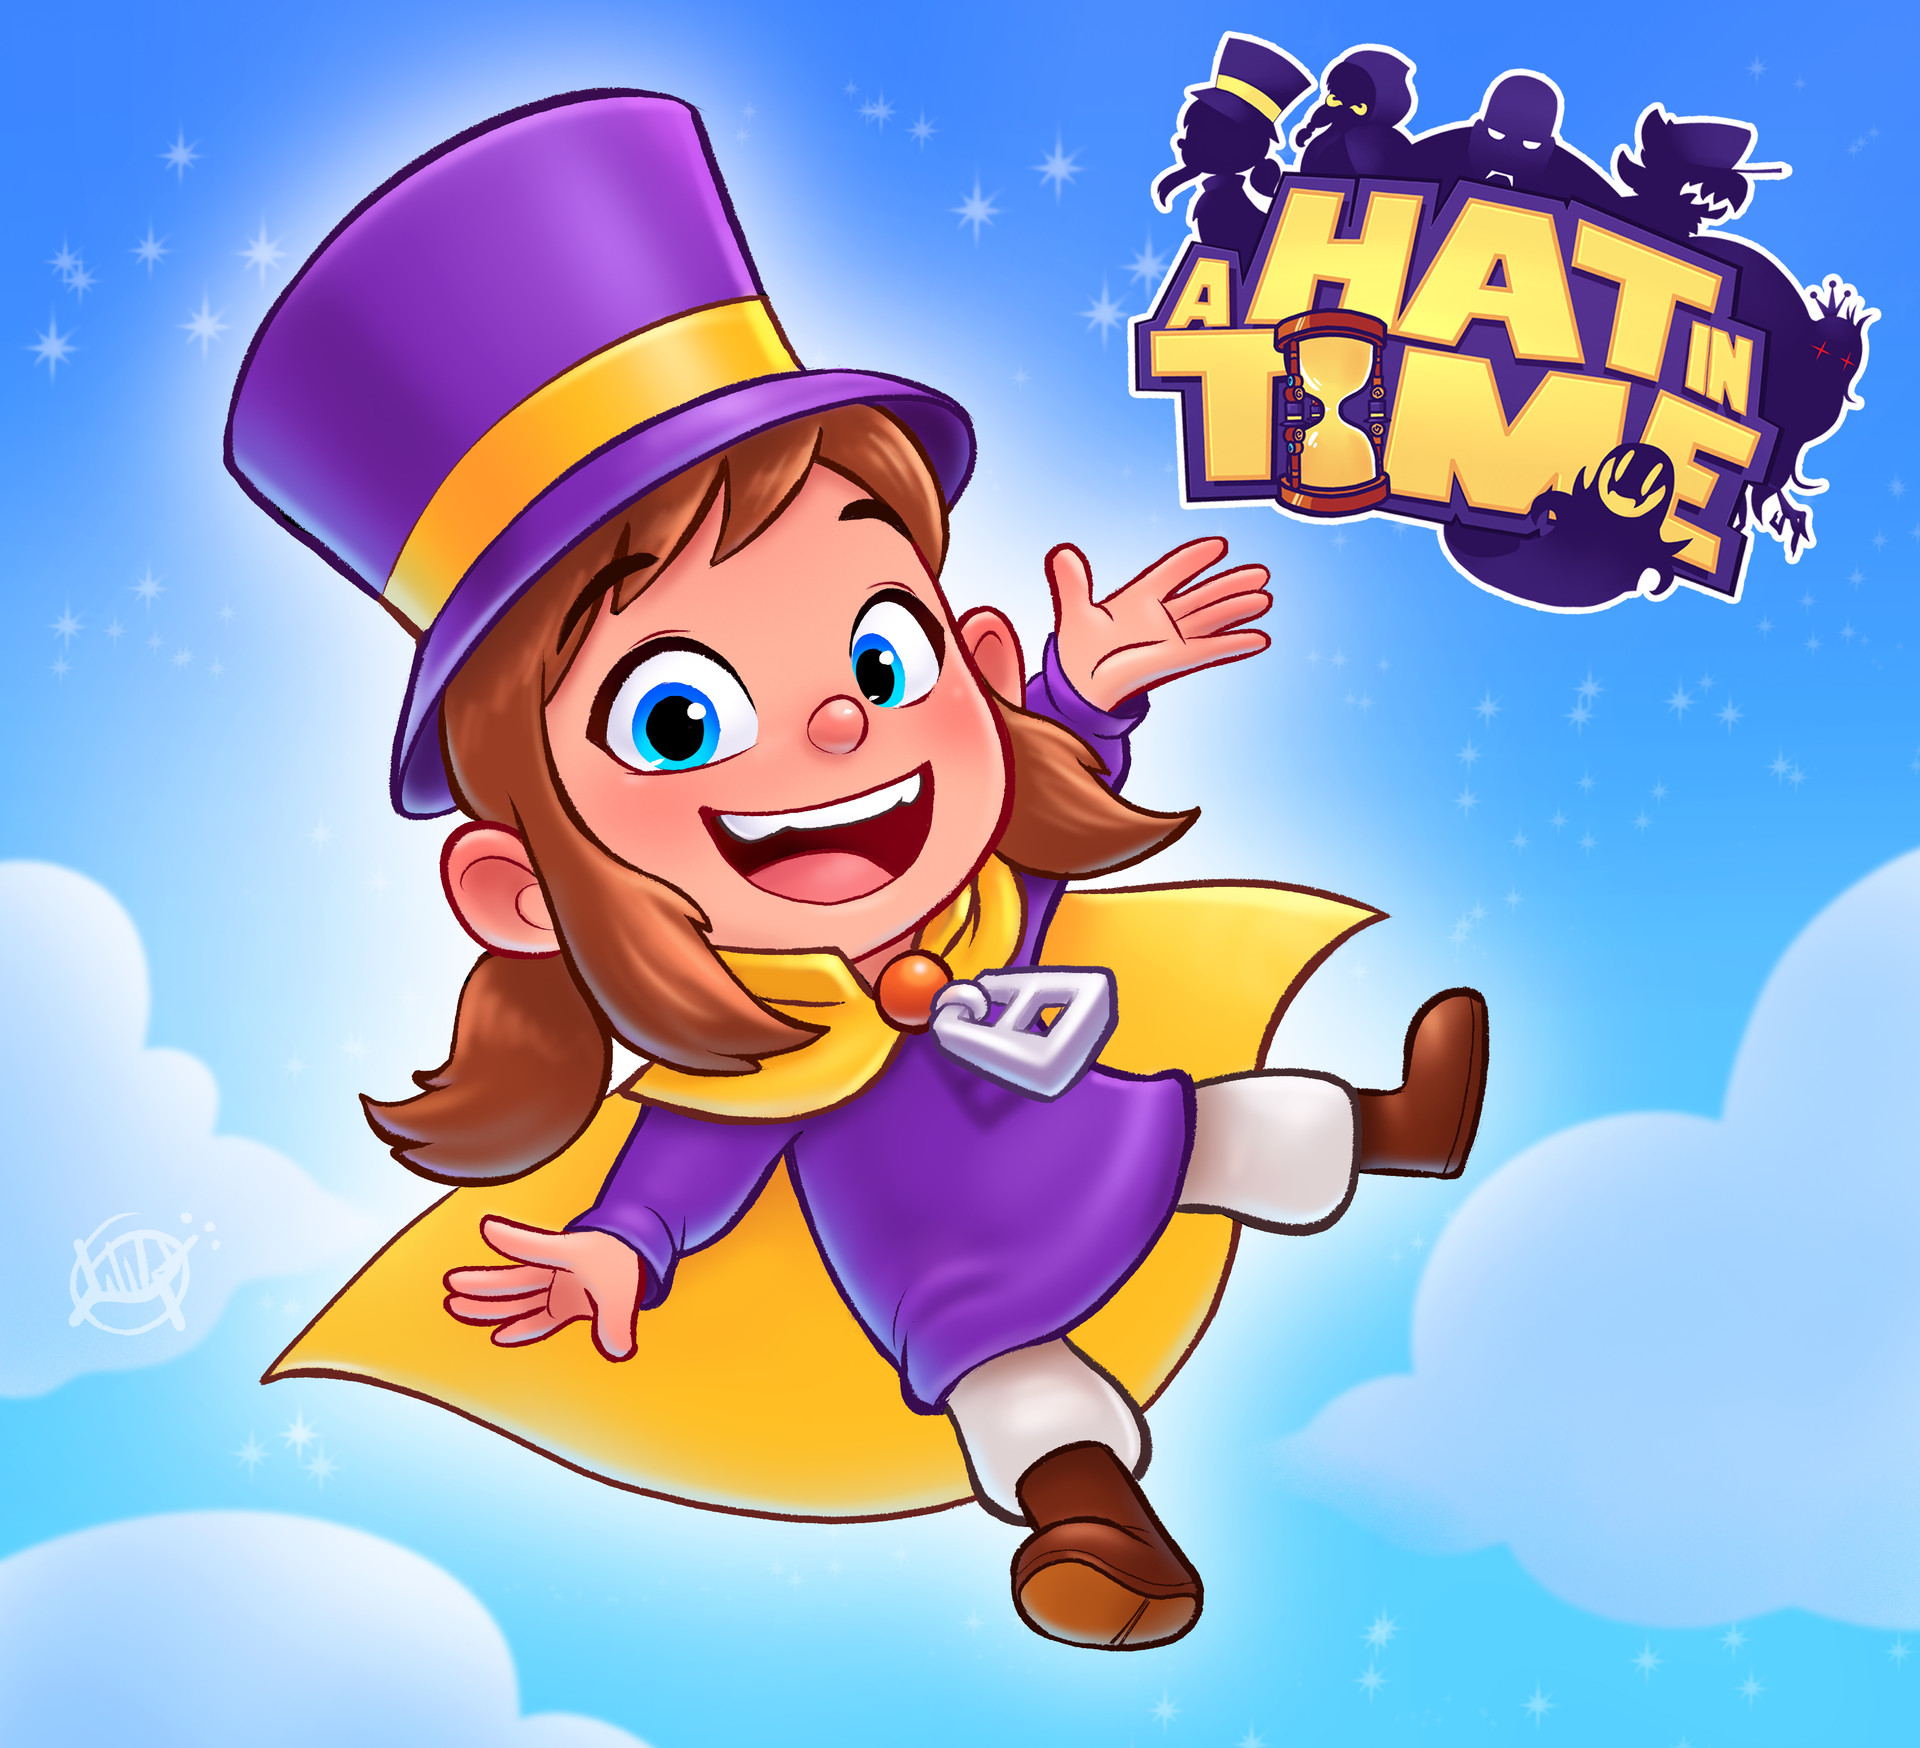 Luigi lucarelli a hat in time art